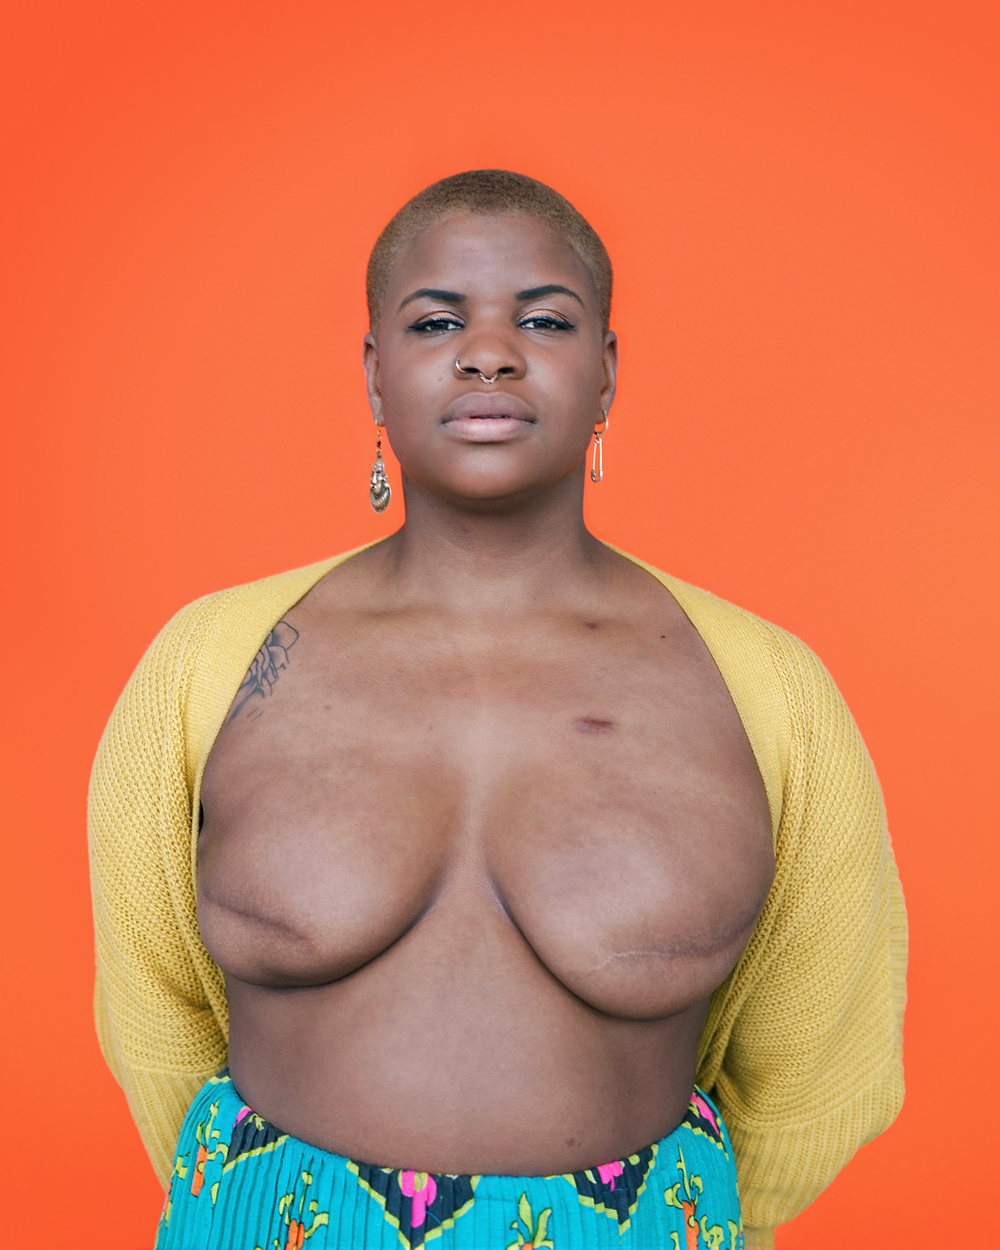 MEETINGS: ERICKA HART From outspoken speeches to nude photoshoots, Ericka Hart is disrupting the world's misinformed idea of what a breast cancer survivor looks like. Find out more about our cover star in issue #8. Read more >